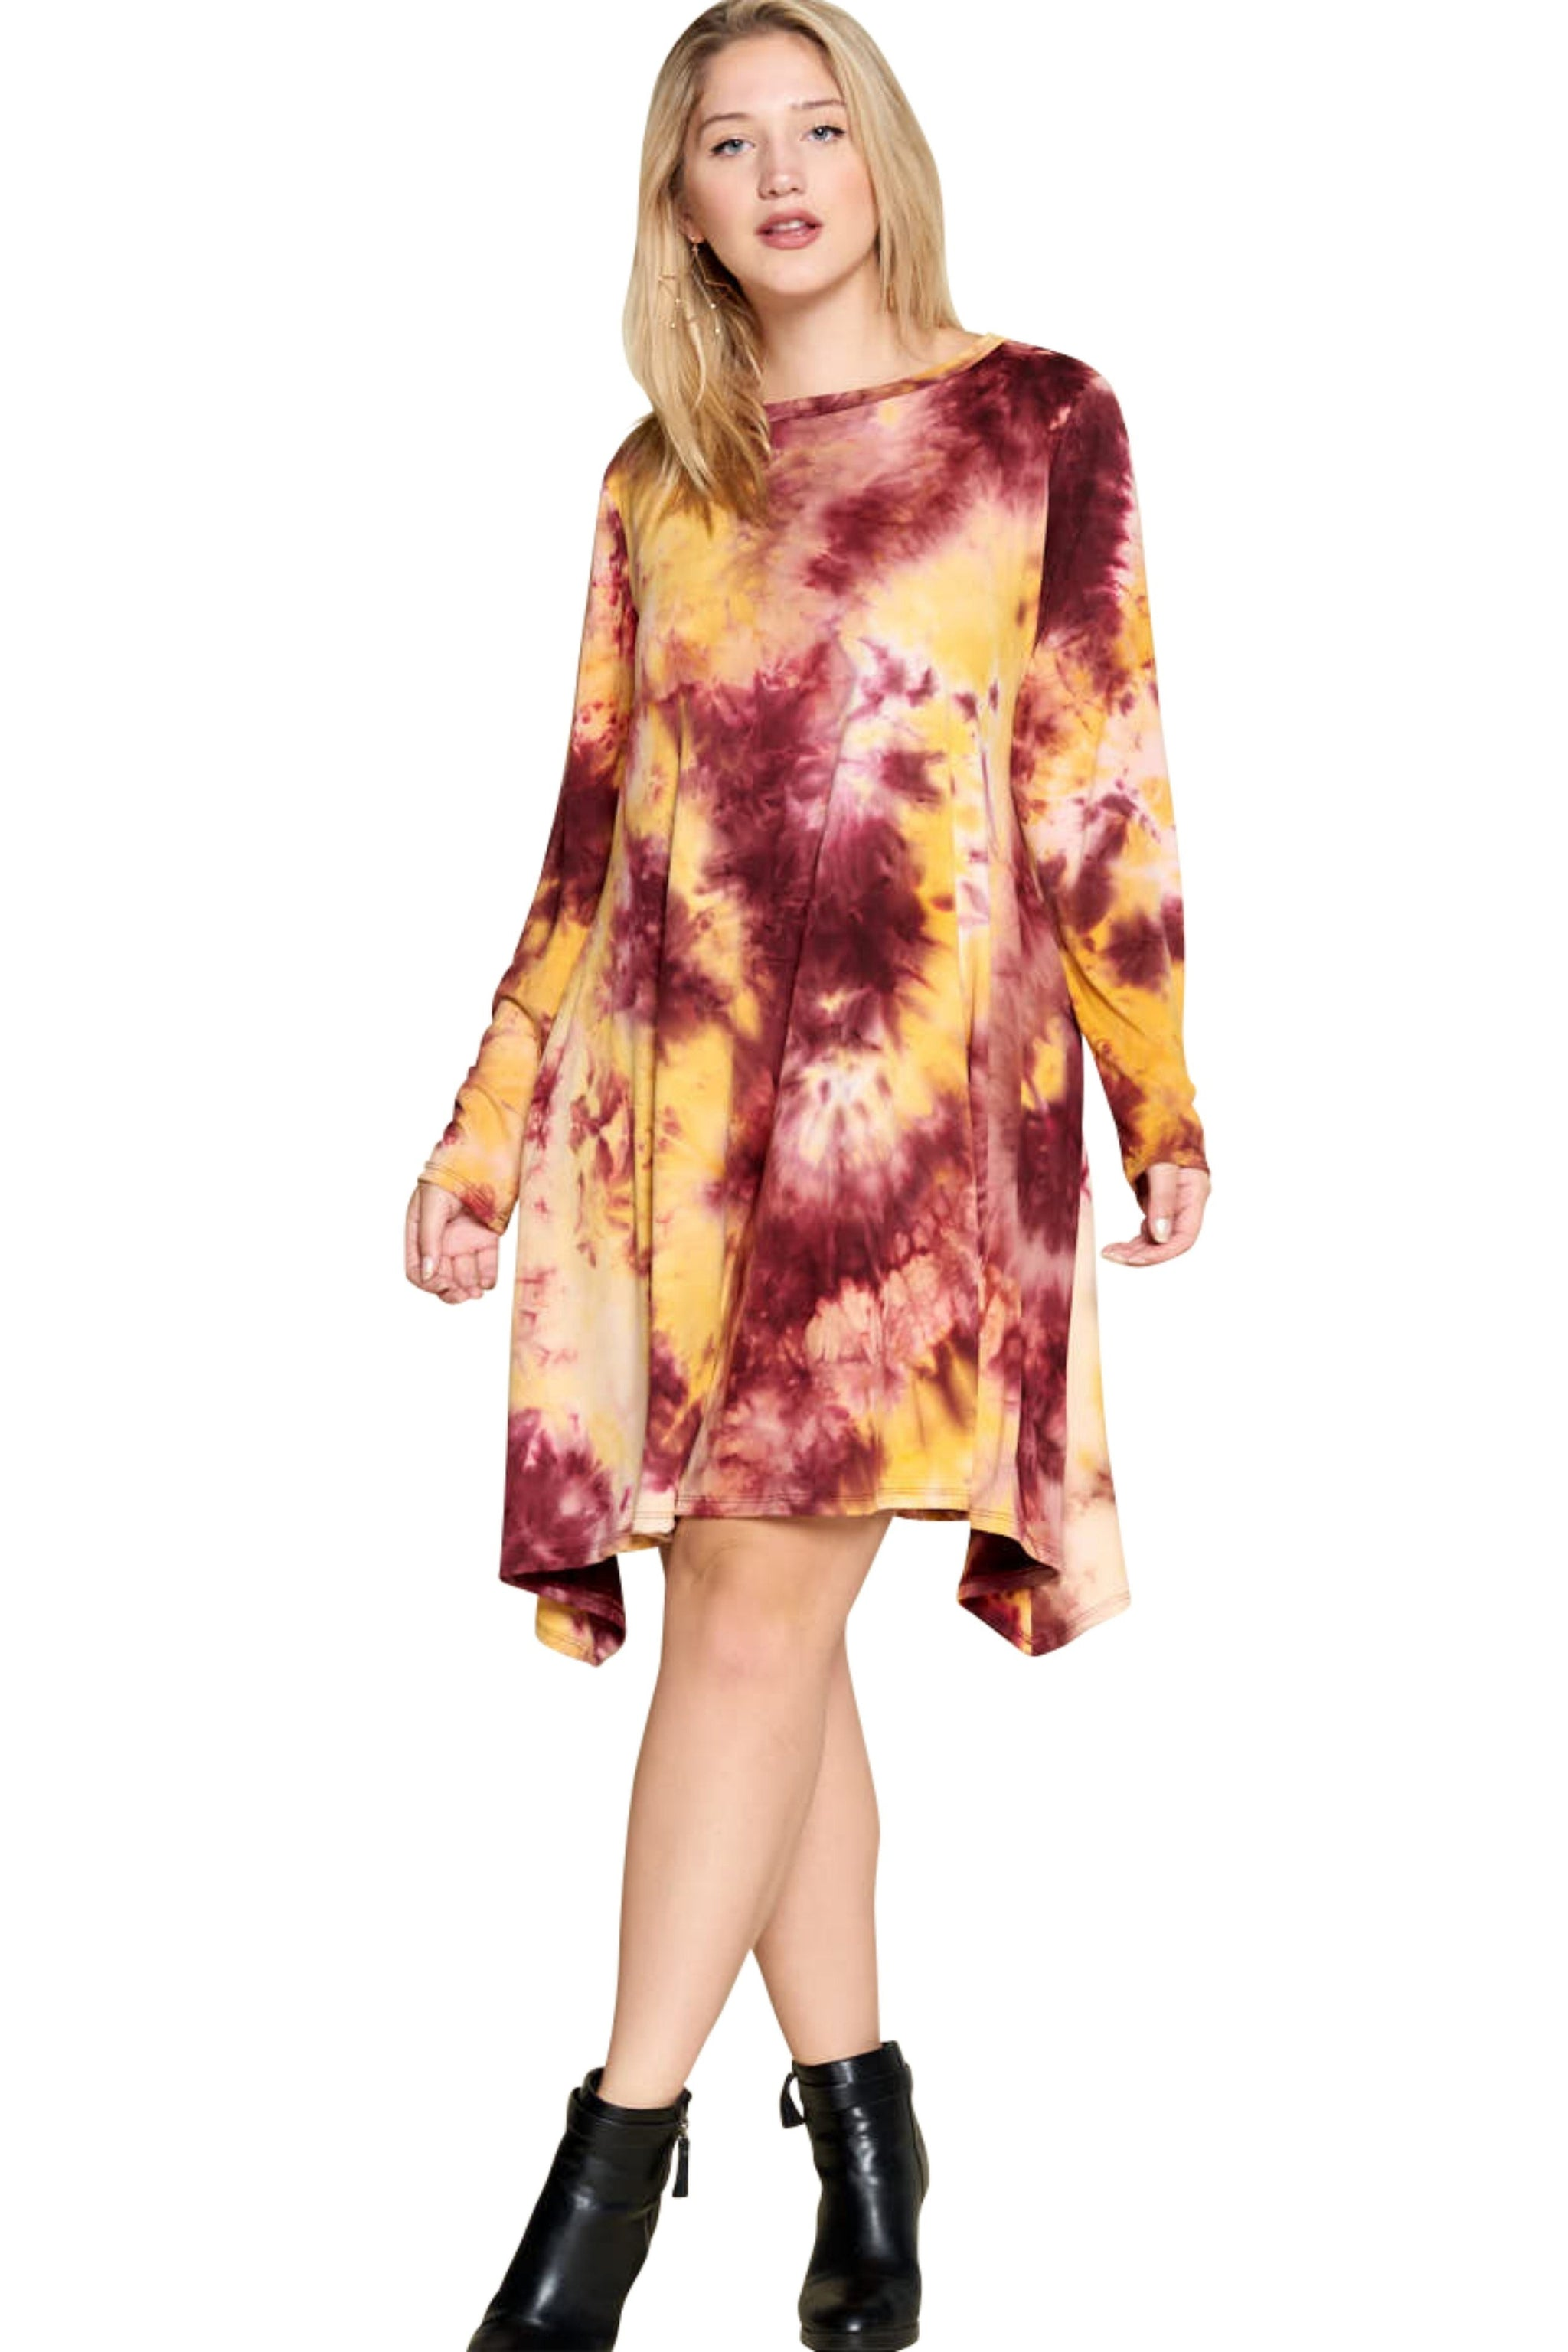 plus size Long Sleeve Dress aa. Melody Dress - Crimson/Gold